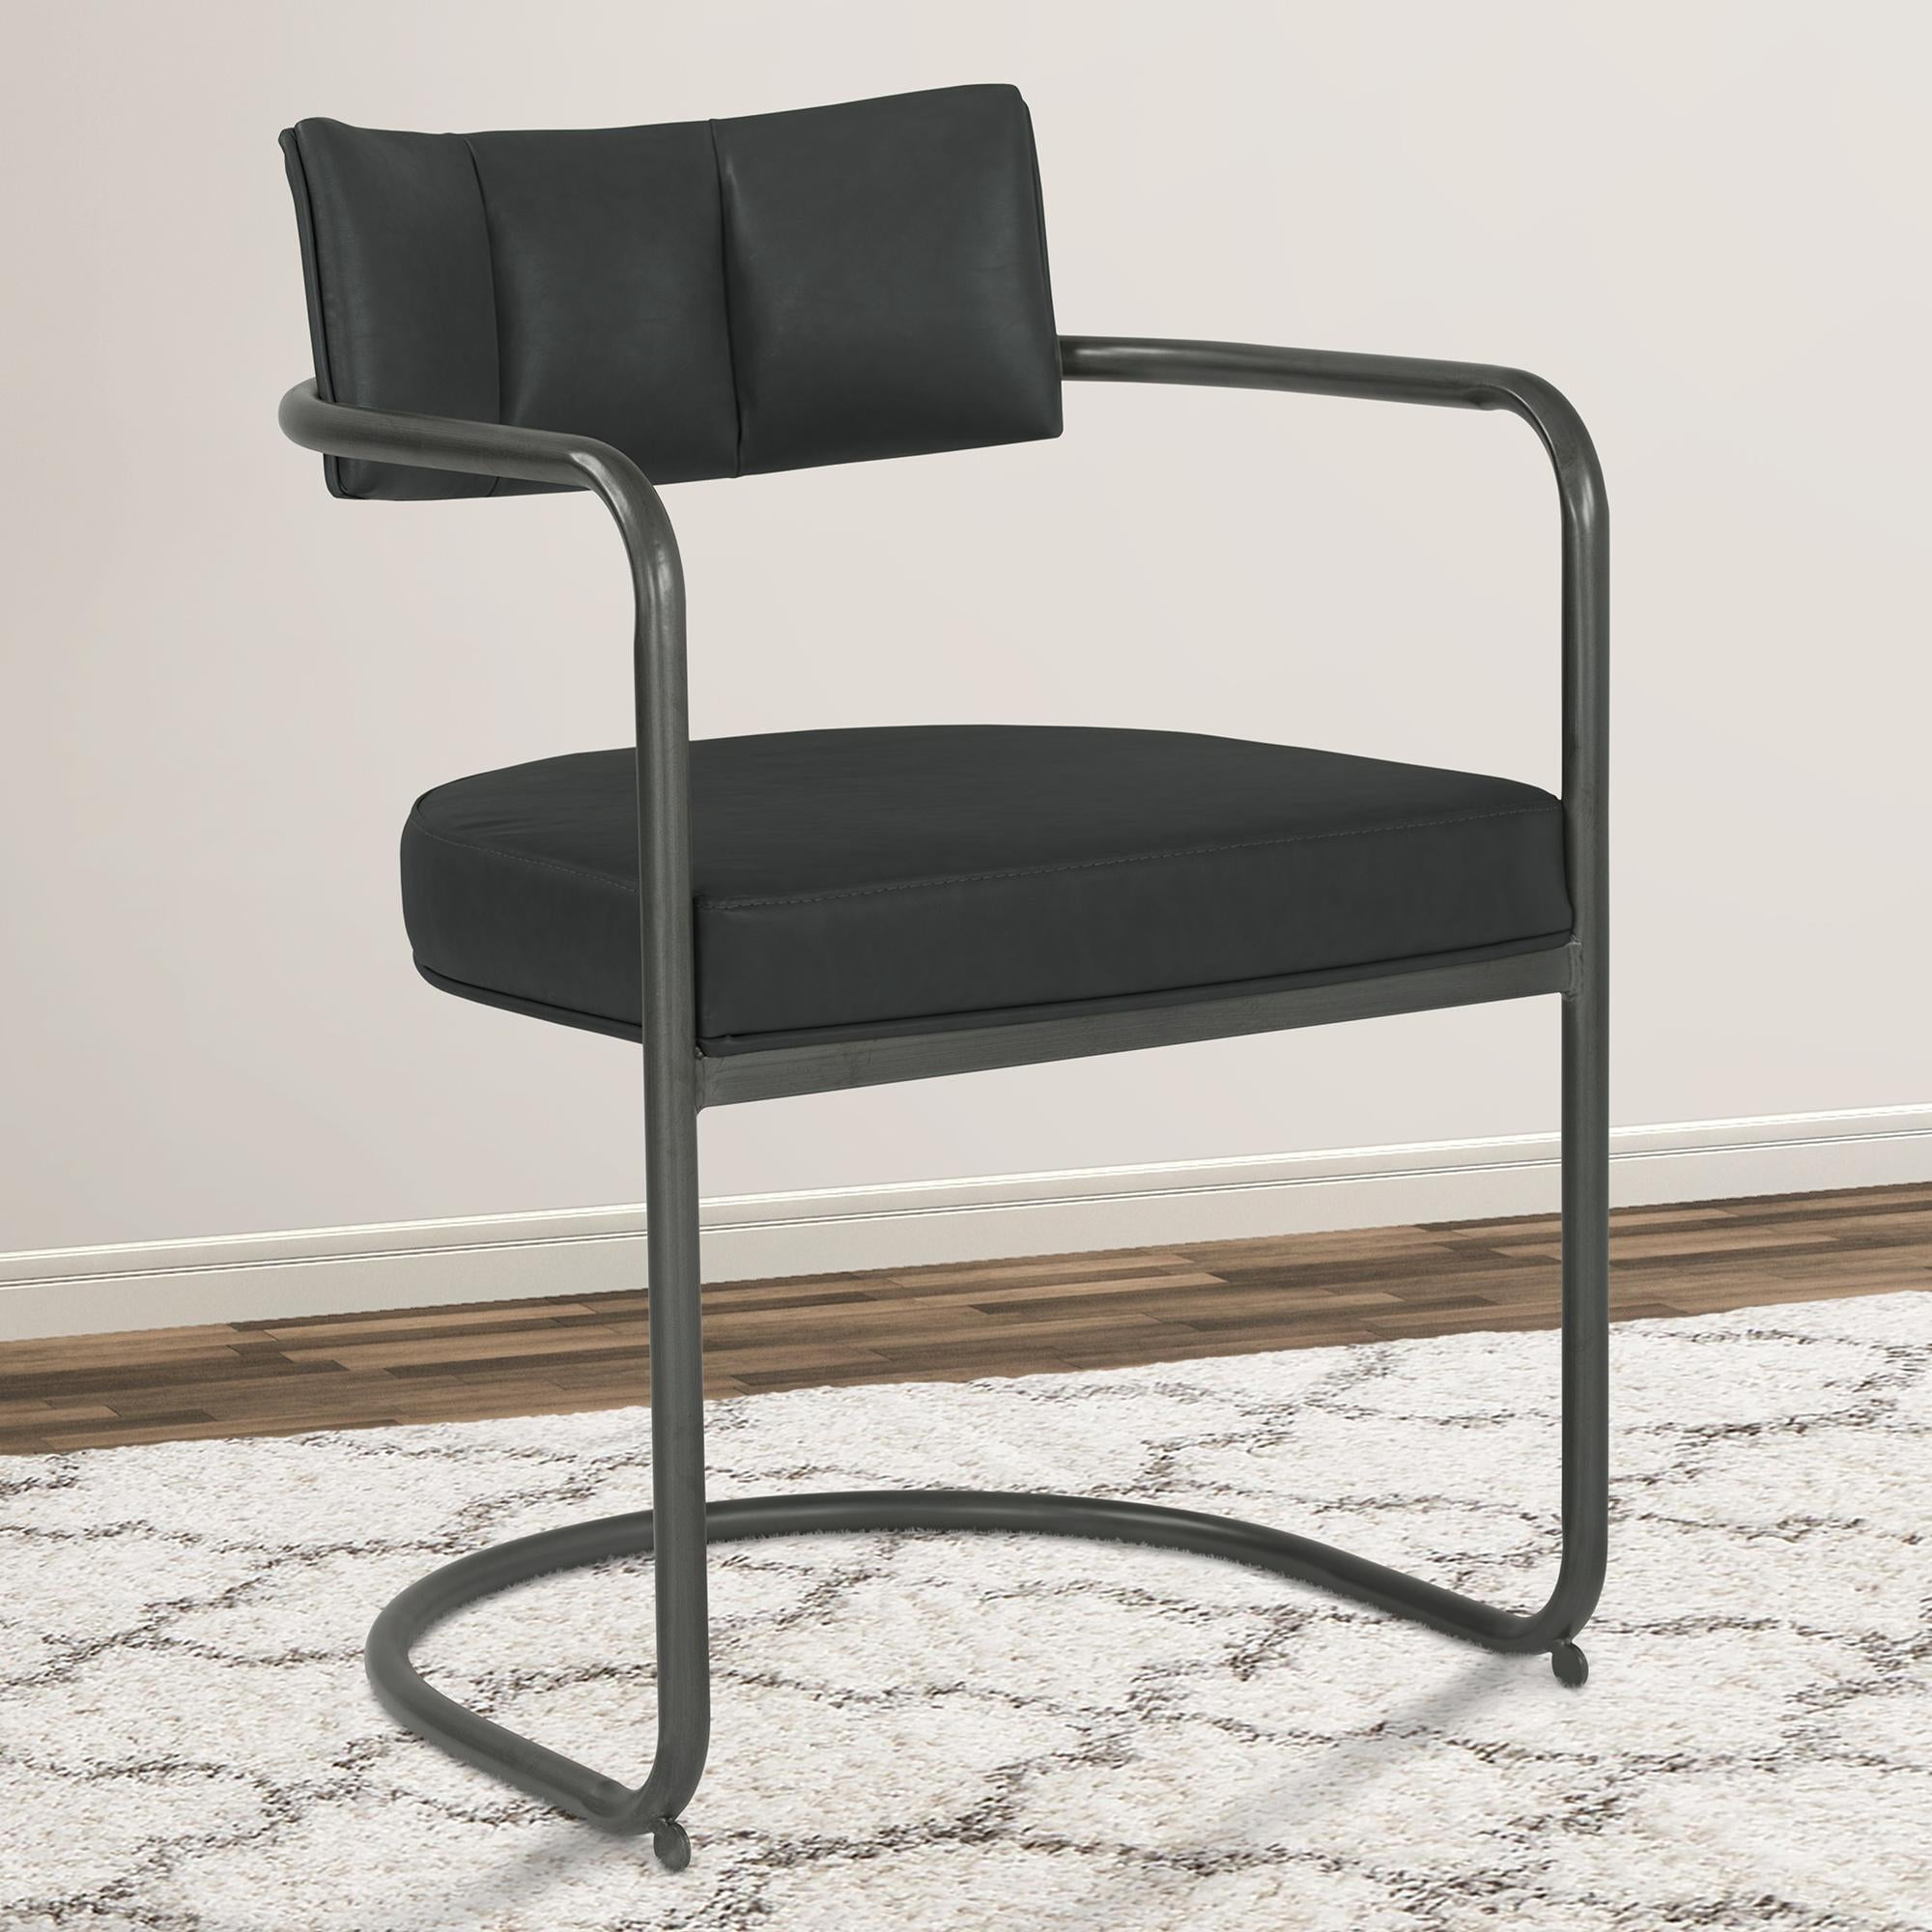 Armen Living Denis Contemporary Metal Dining Chair in Mineral Finish with Vintage Black Faux Leather